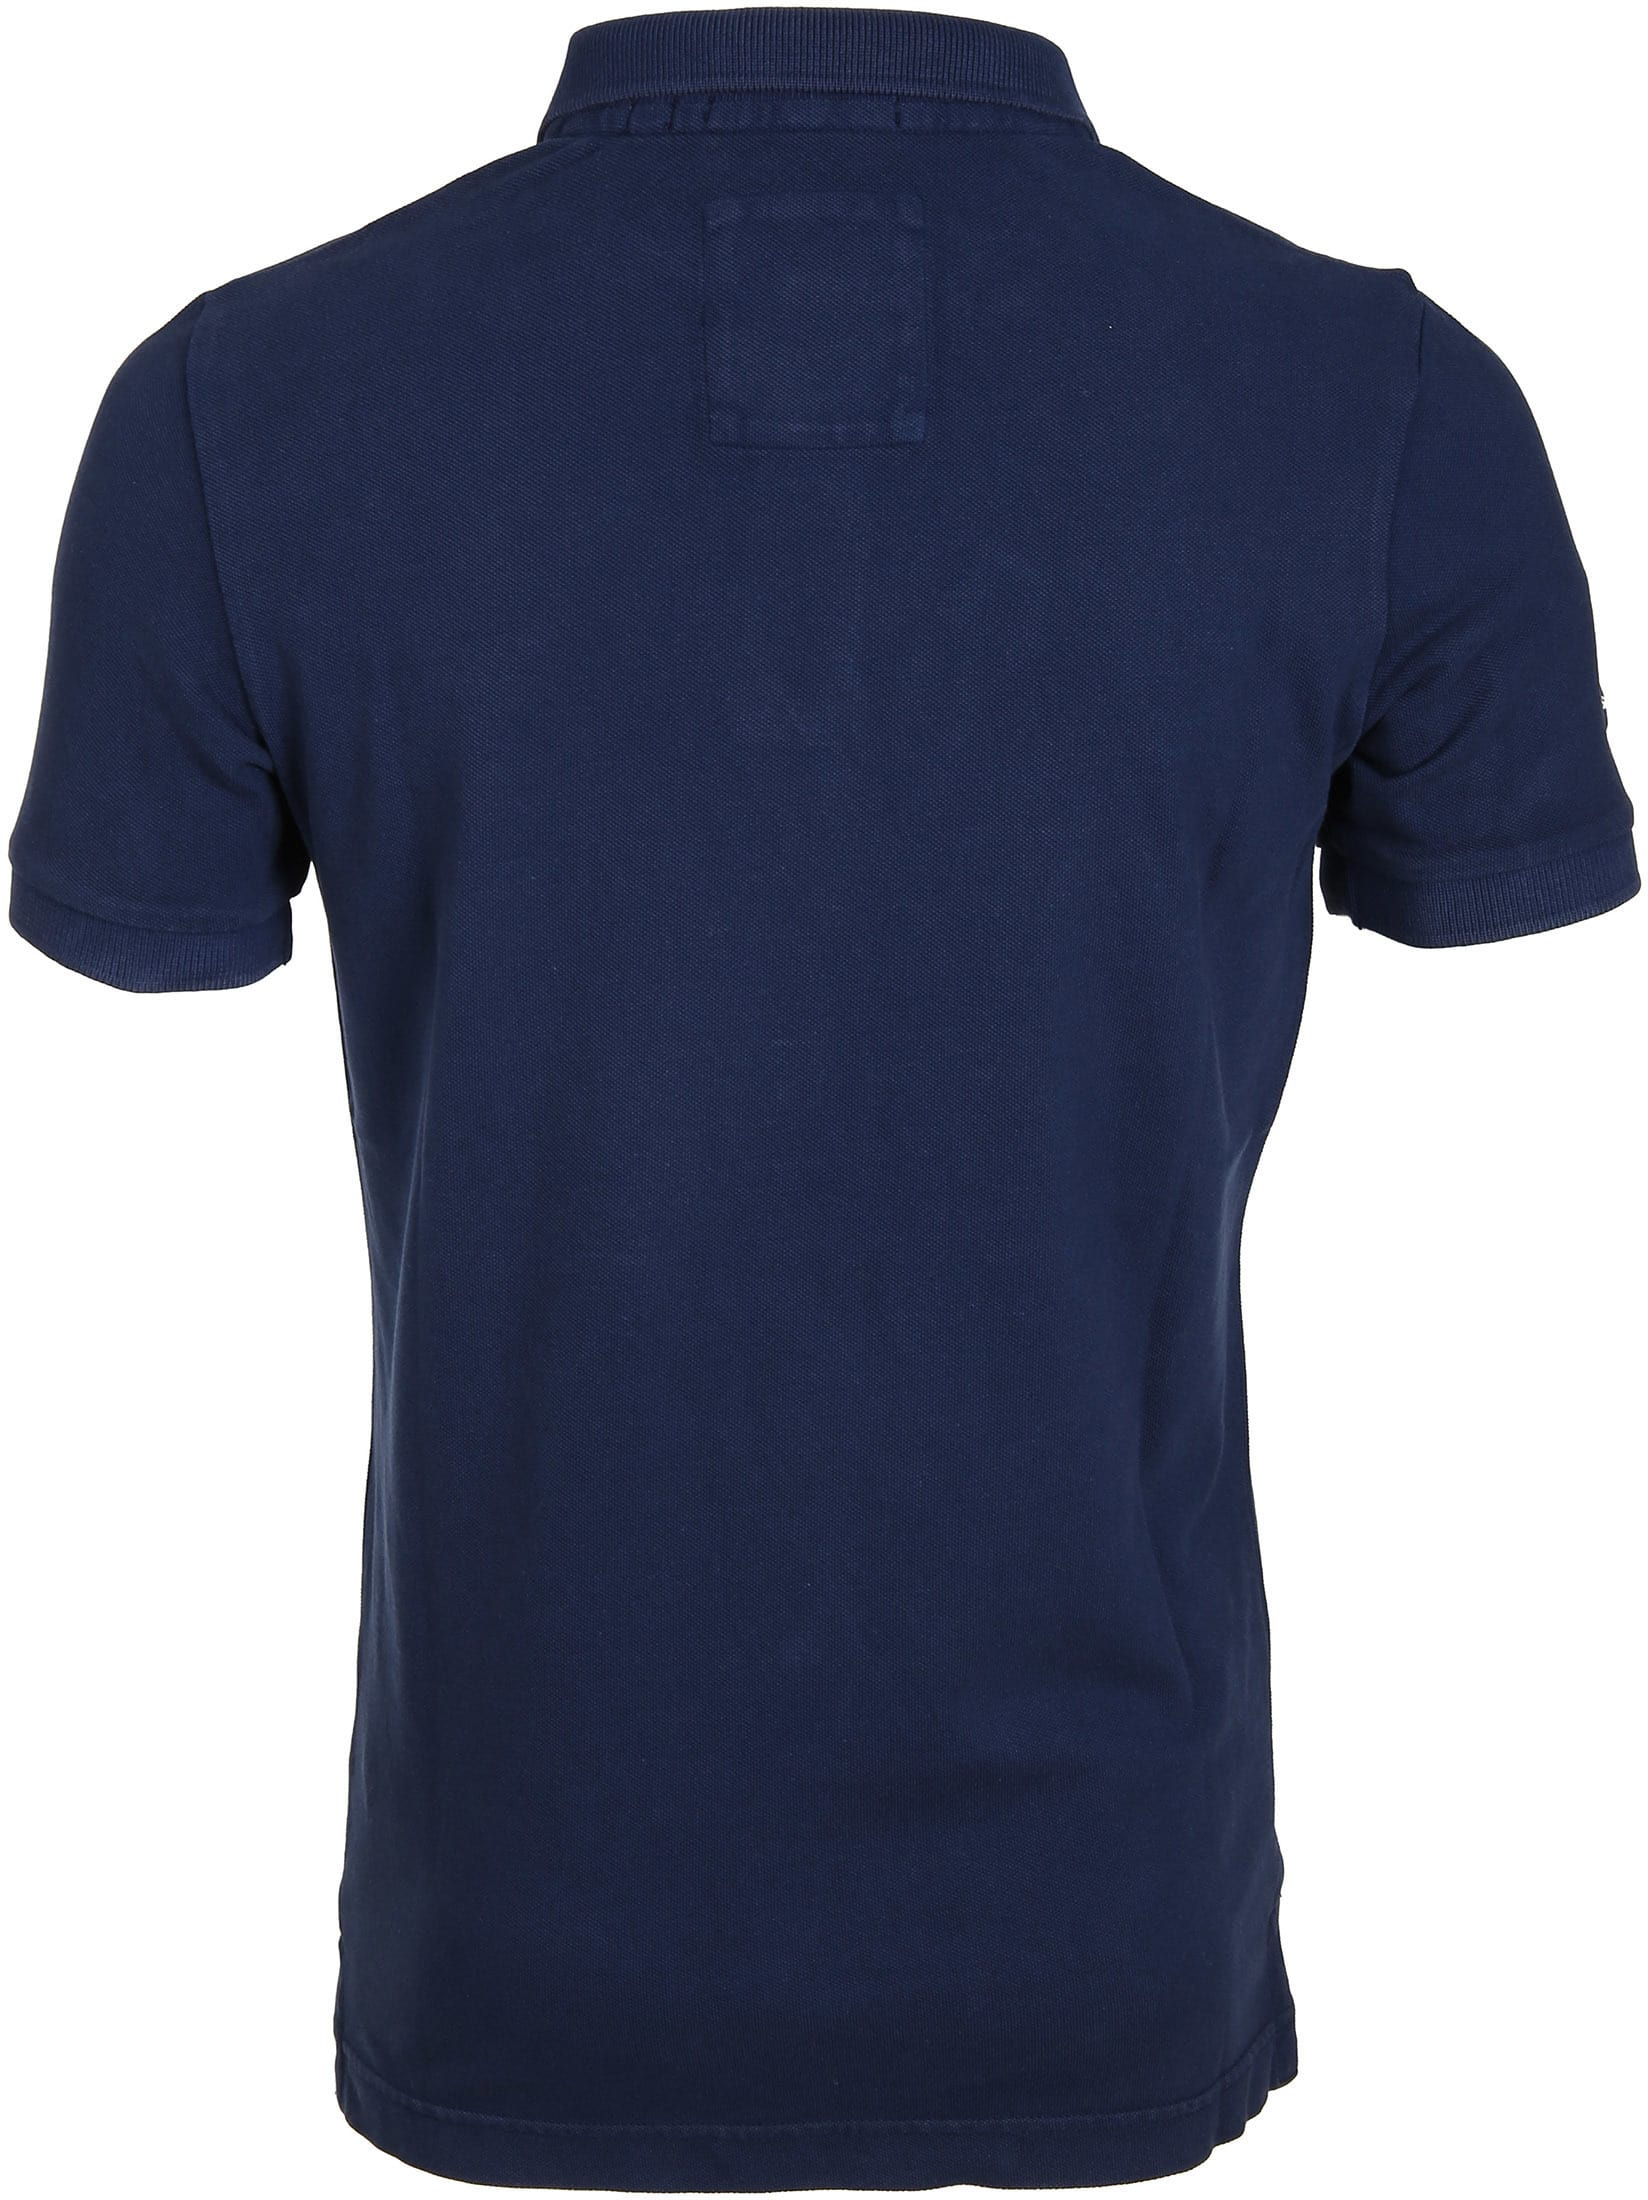 Superdry Vintage Destroyed Polo Navy foto 3